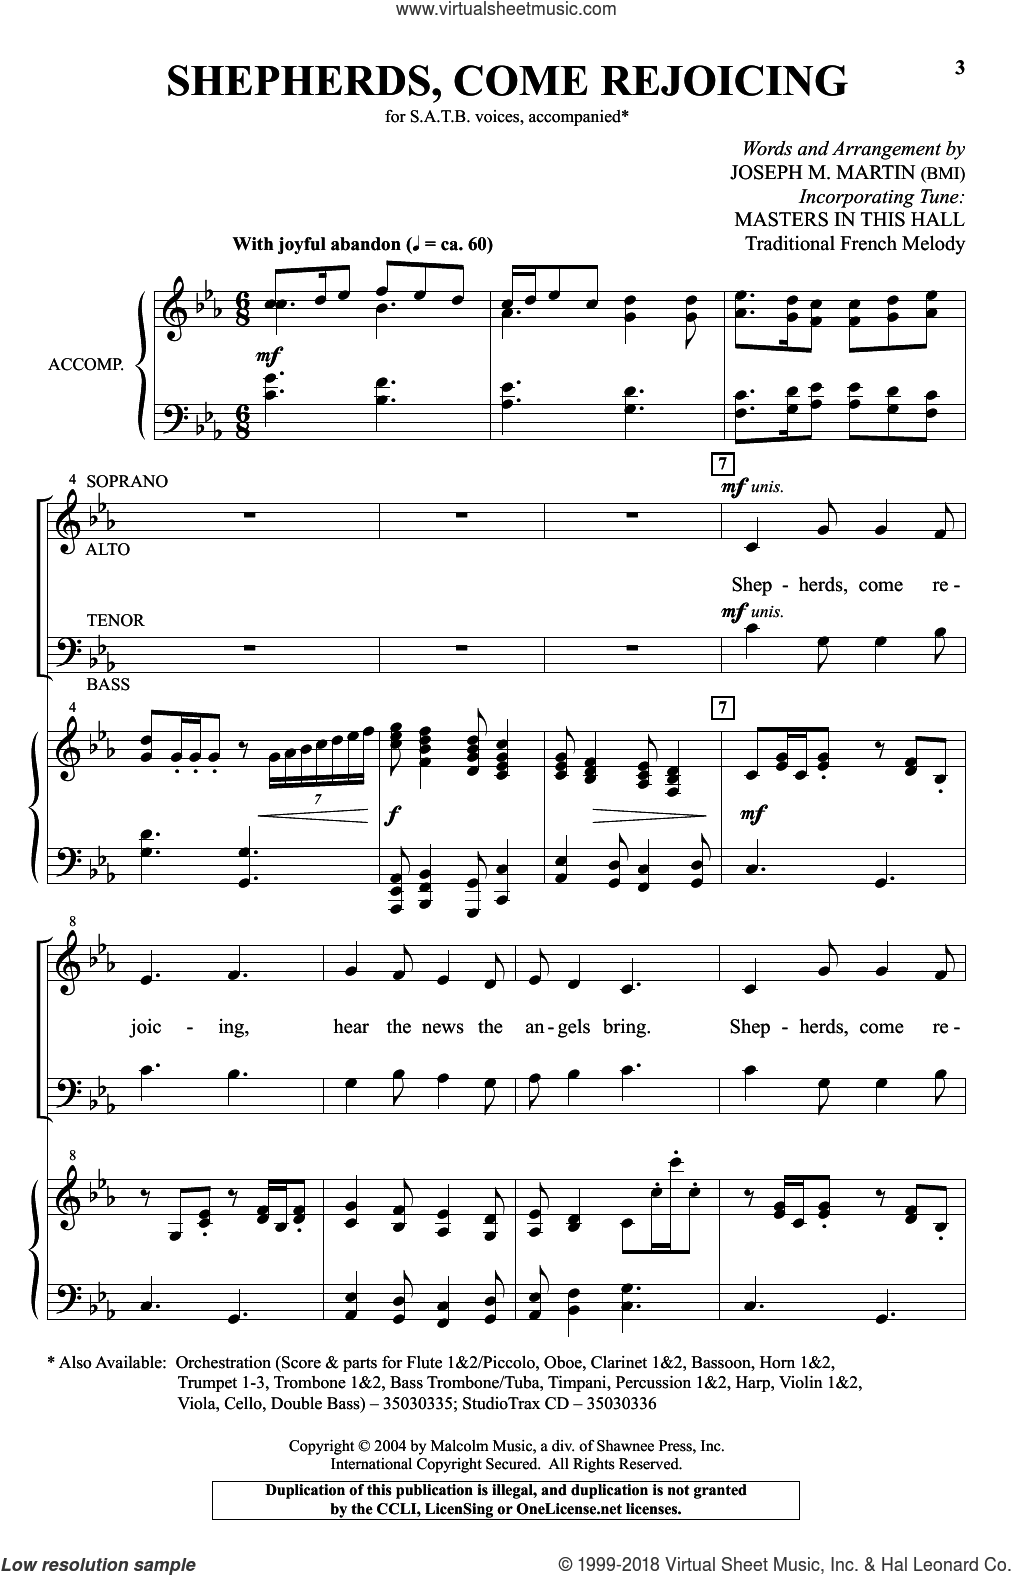 Shepherds, Come Rejoicing sheet music for choir and piano (SATB) by Joseph M. Martin. Score Image Preview.